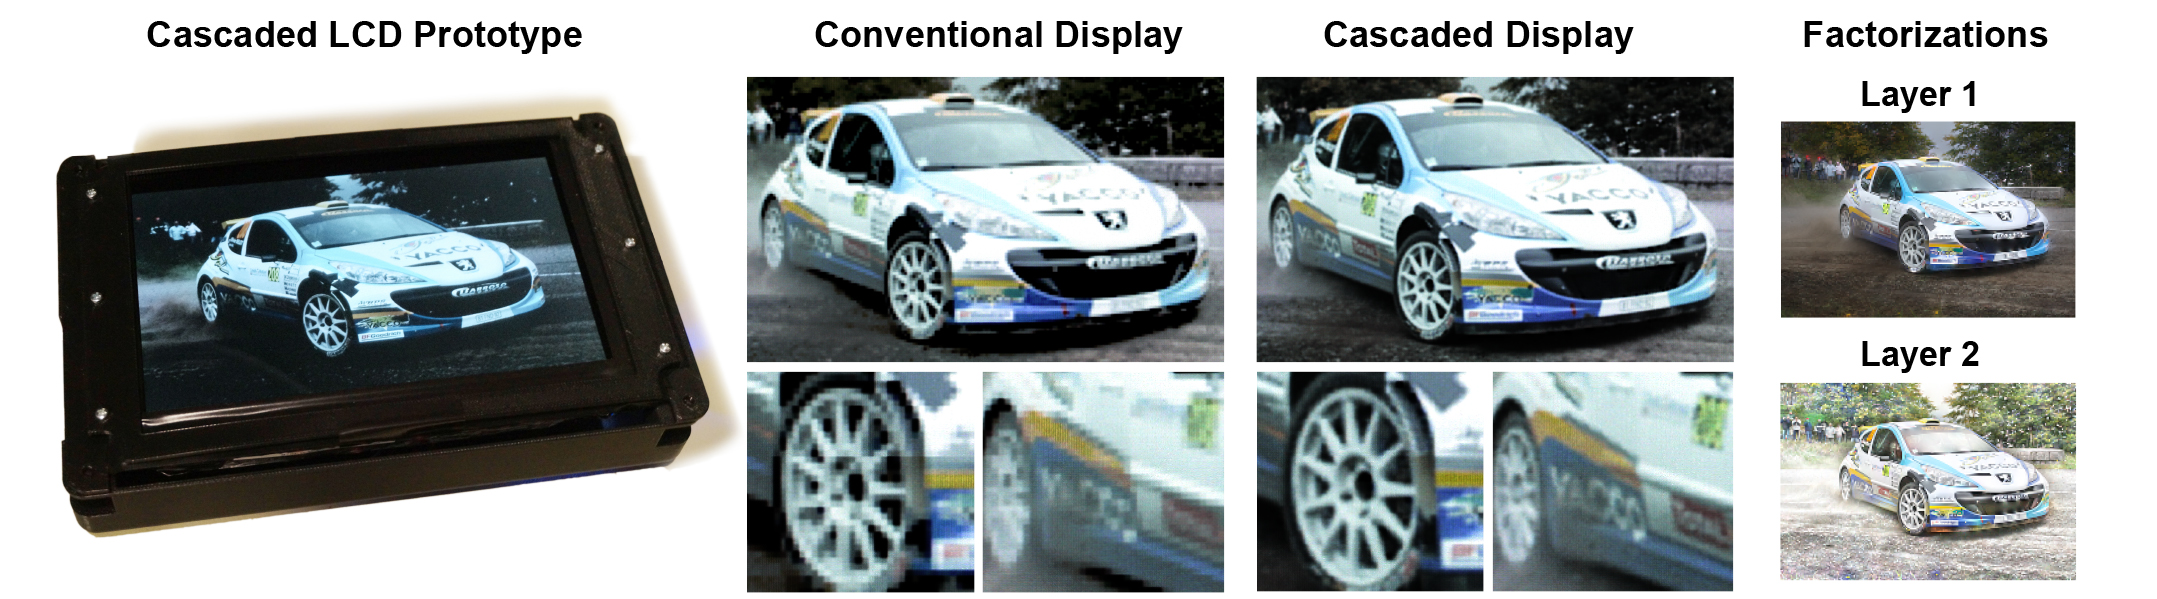 Cascaded Displays: Spatiotemporal Superresolution using Offset P